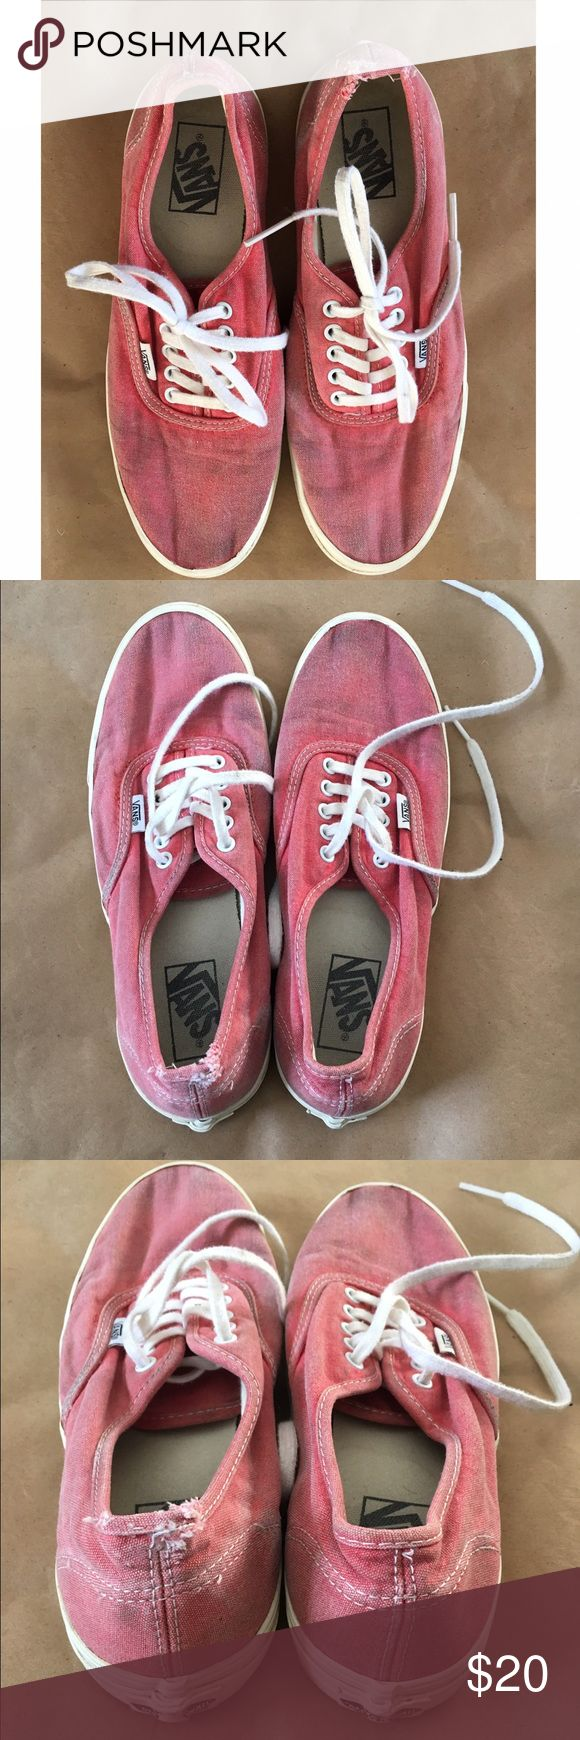 Vans Authentic Lo Pro Shoes Men's 7/Women's 8.5 pre-loved Peach Coral Vans Authentic Lo Pro skate shoes. still lots of life left. bottoms are in great condition. size 7 in Men's or 8.5 in Women's. Vans Shoes